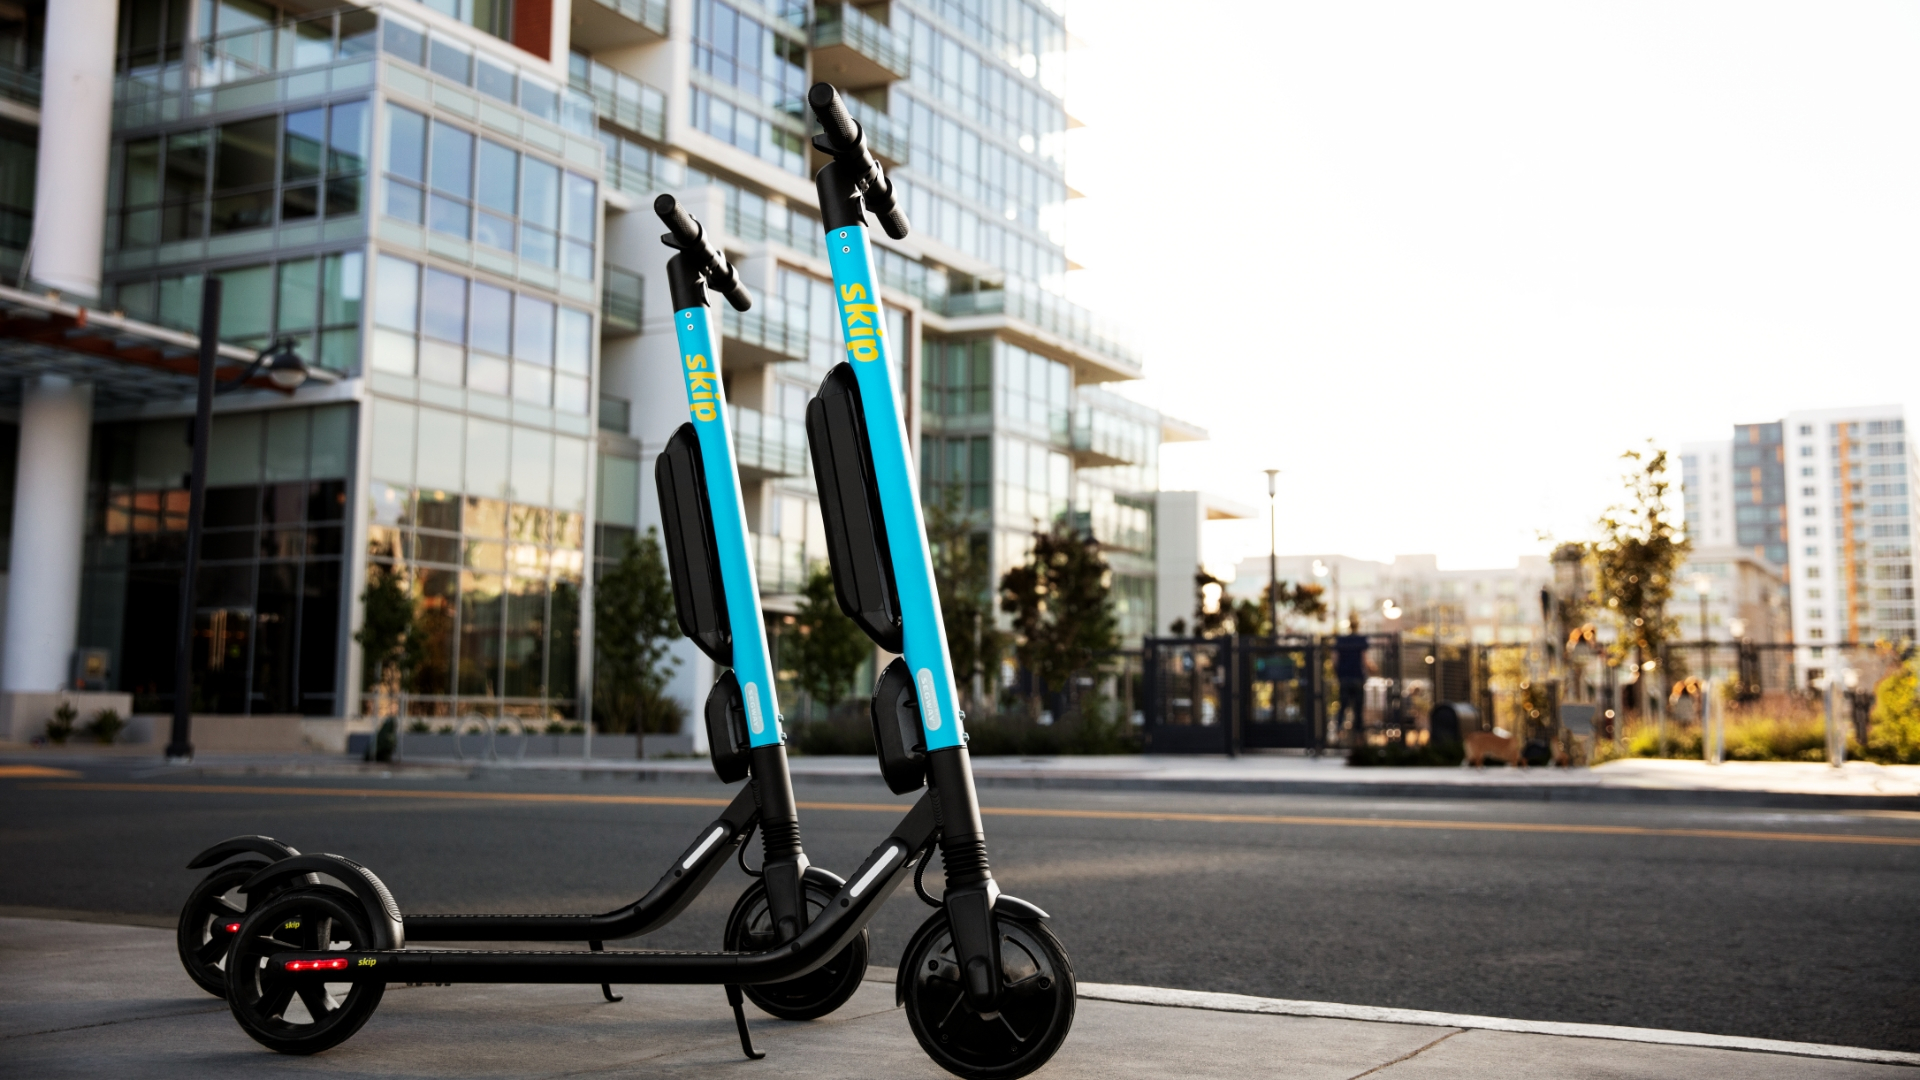 Skip Scooters Parked in the street